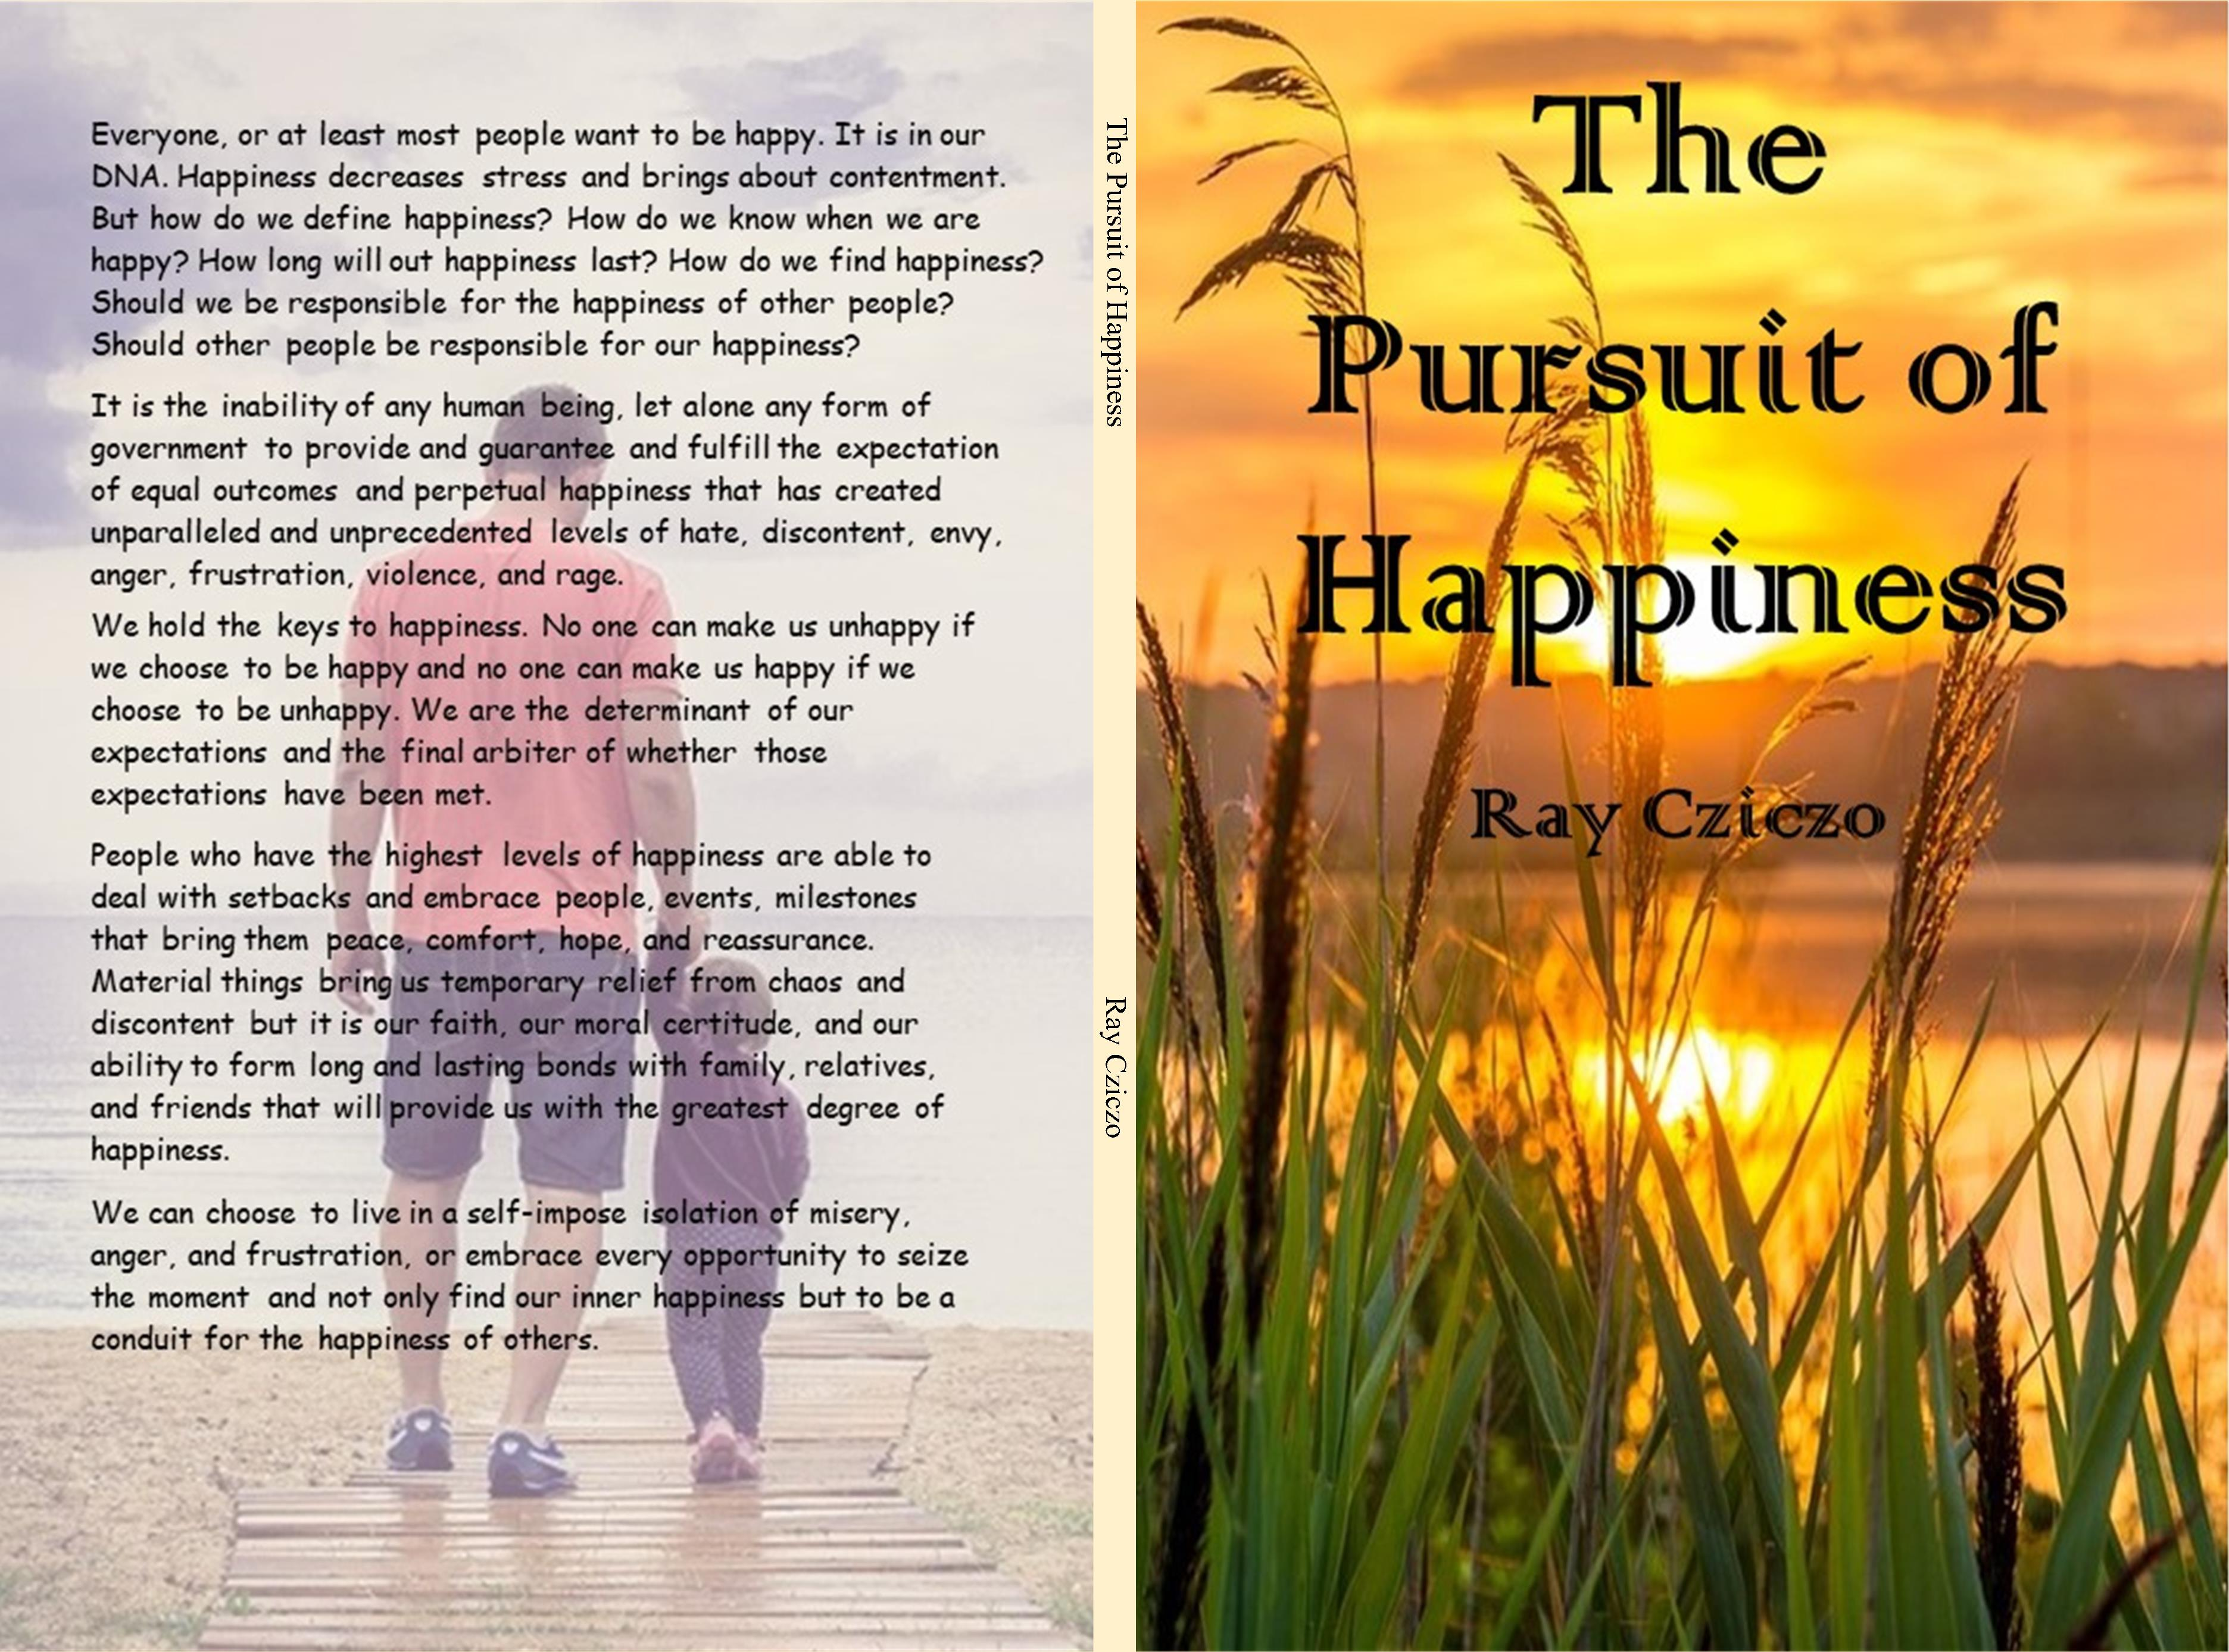 The Pursuit of Happiness cover image